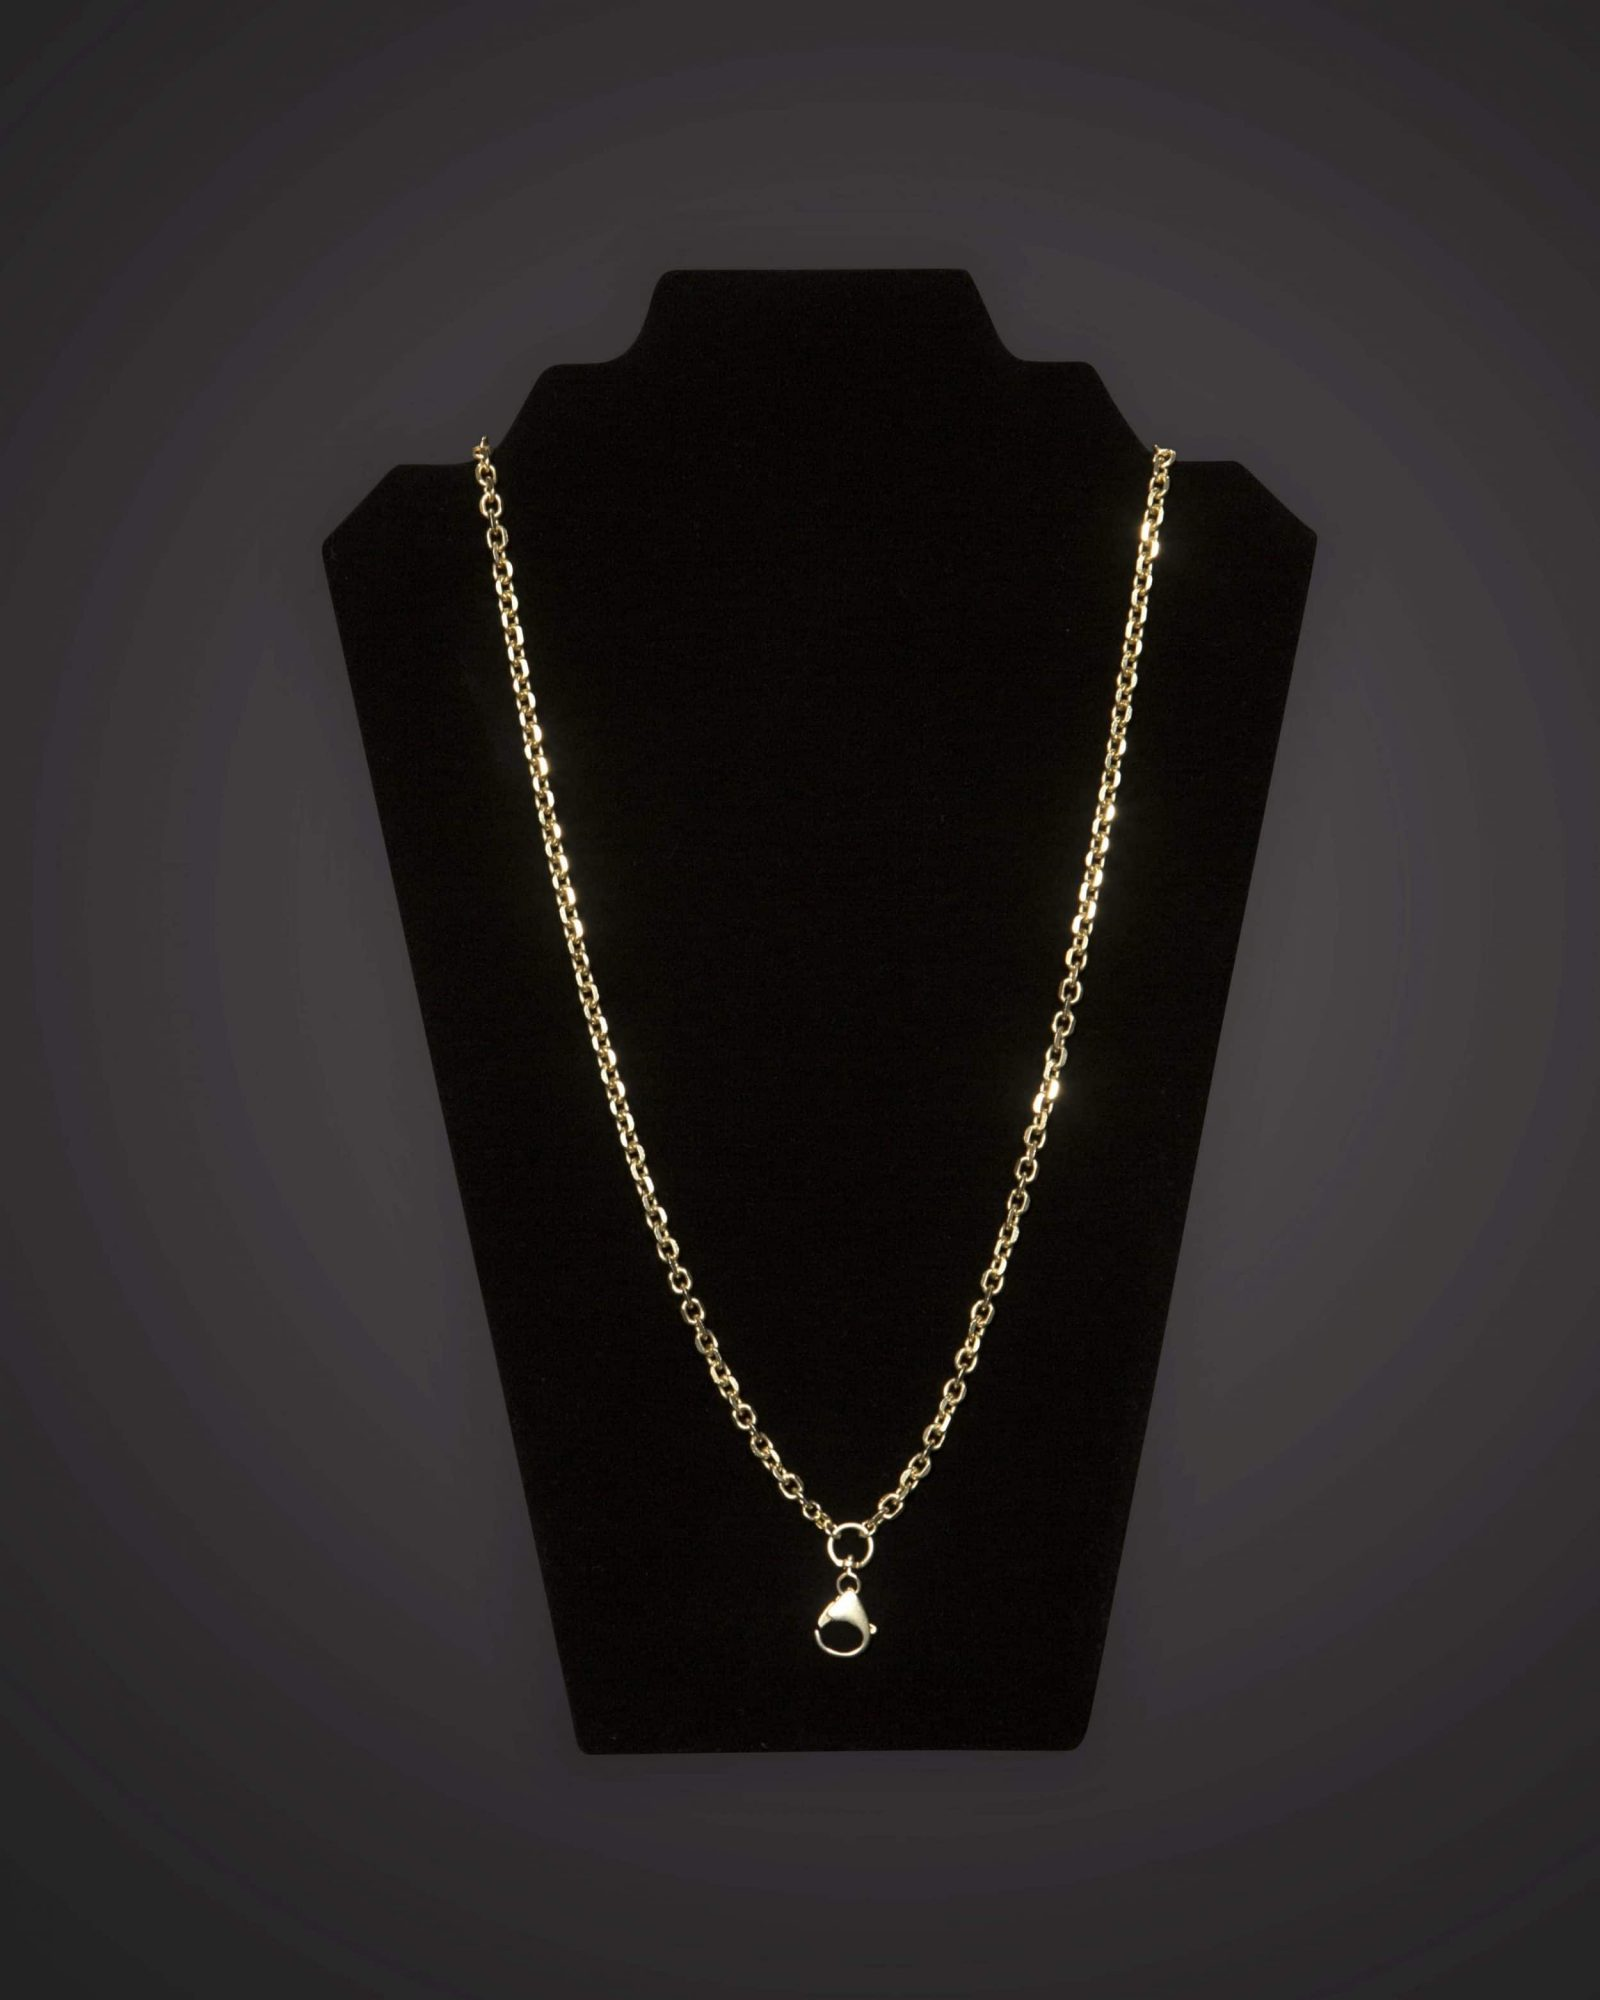 Pectoral Chain - Geo - Short - Gold Plated